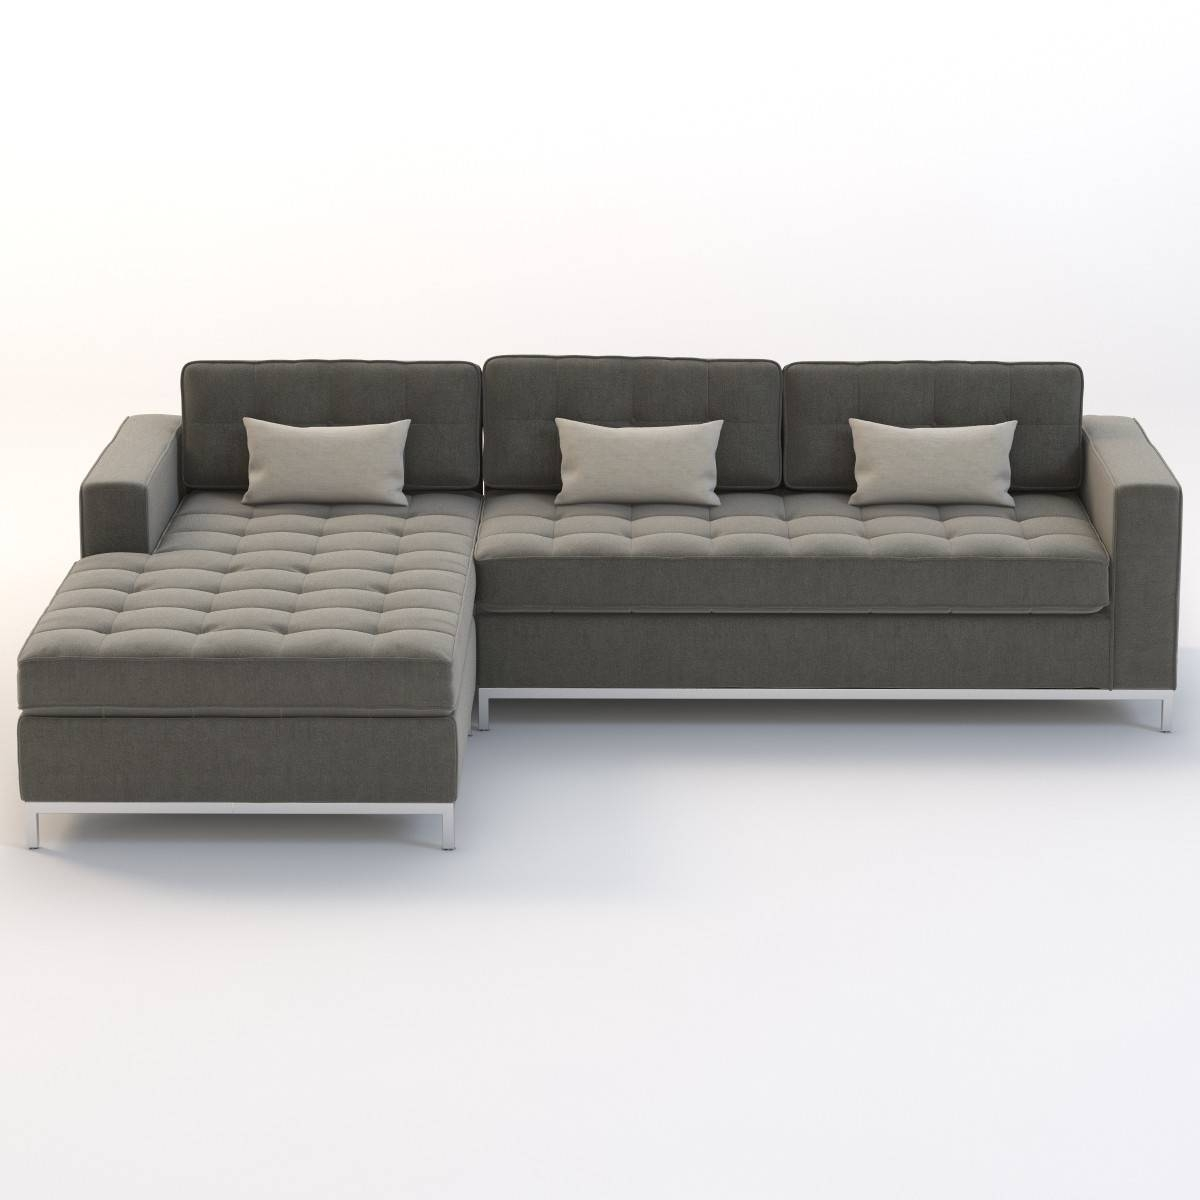 Jane Bi Sectional Sofa - Leather Sectional Sofa with regard to Jane Bi Sectional Sofa (Image 14 of 30)